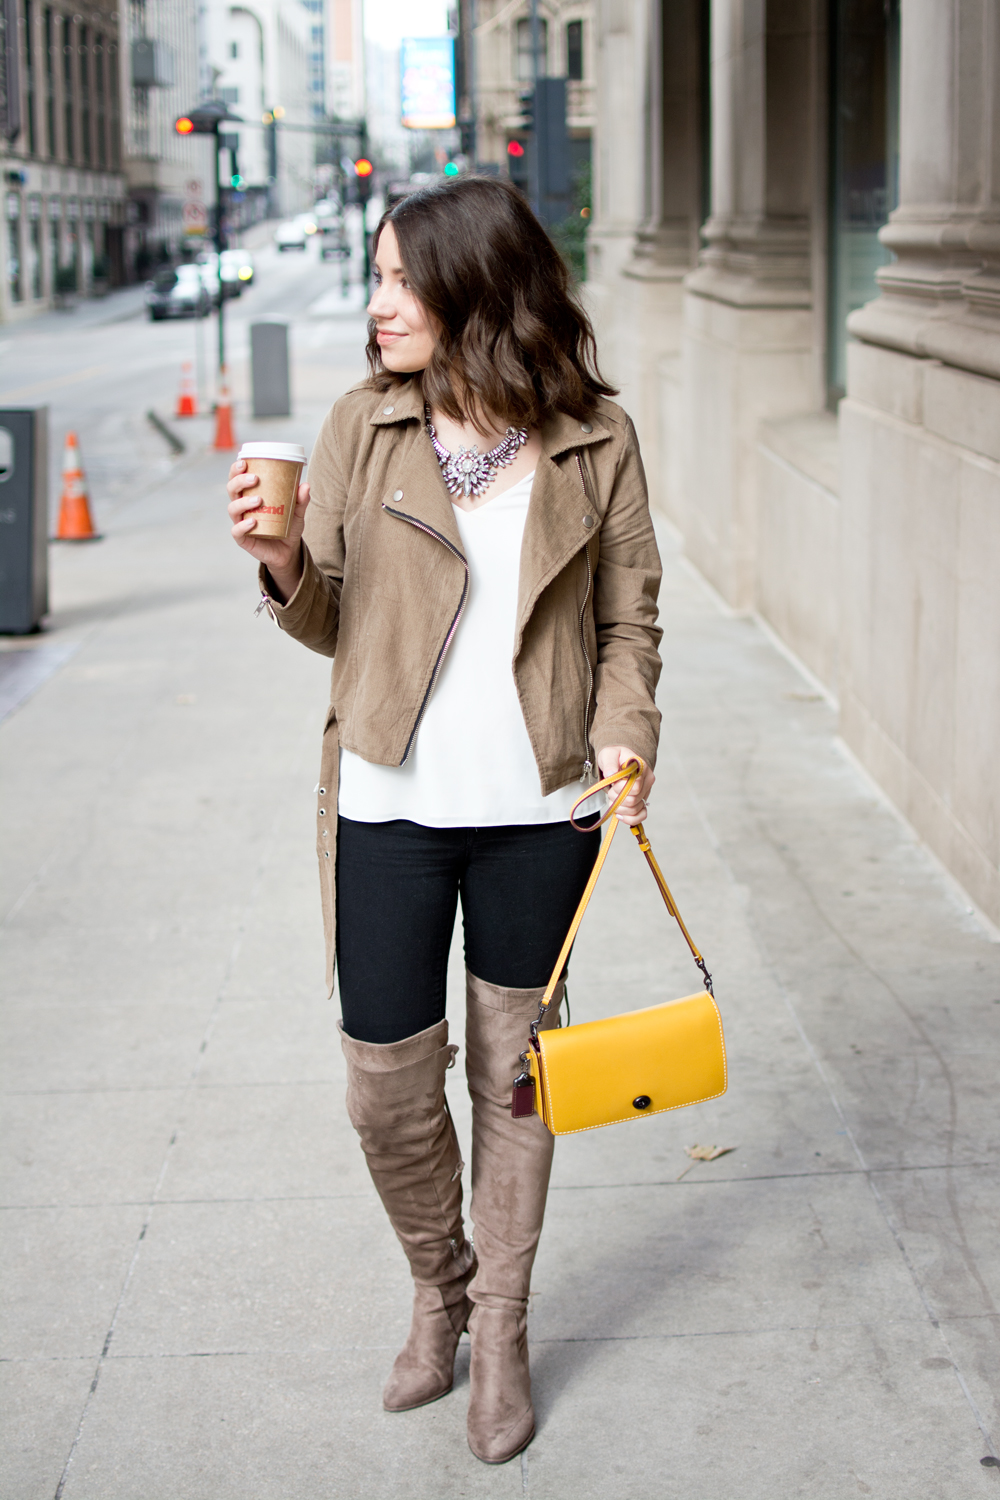 winter outfit idea, blogger, outfit post, moto jacket, how to wear otk boots, over the knee boots, how to style over the knee boots, winter outfit, winter style, fashion, ootd